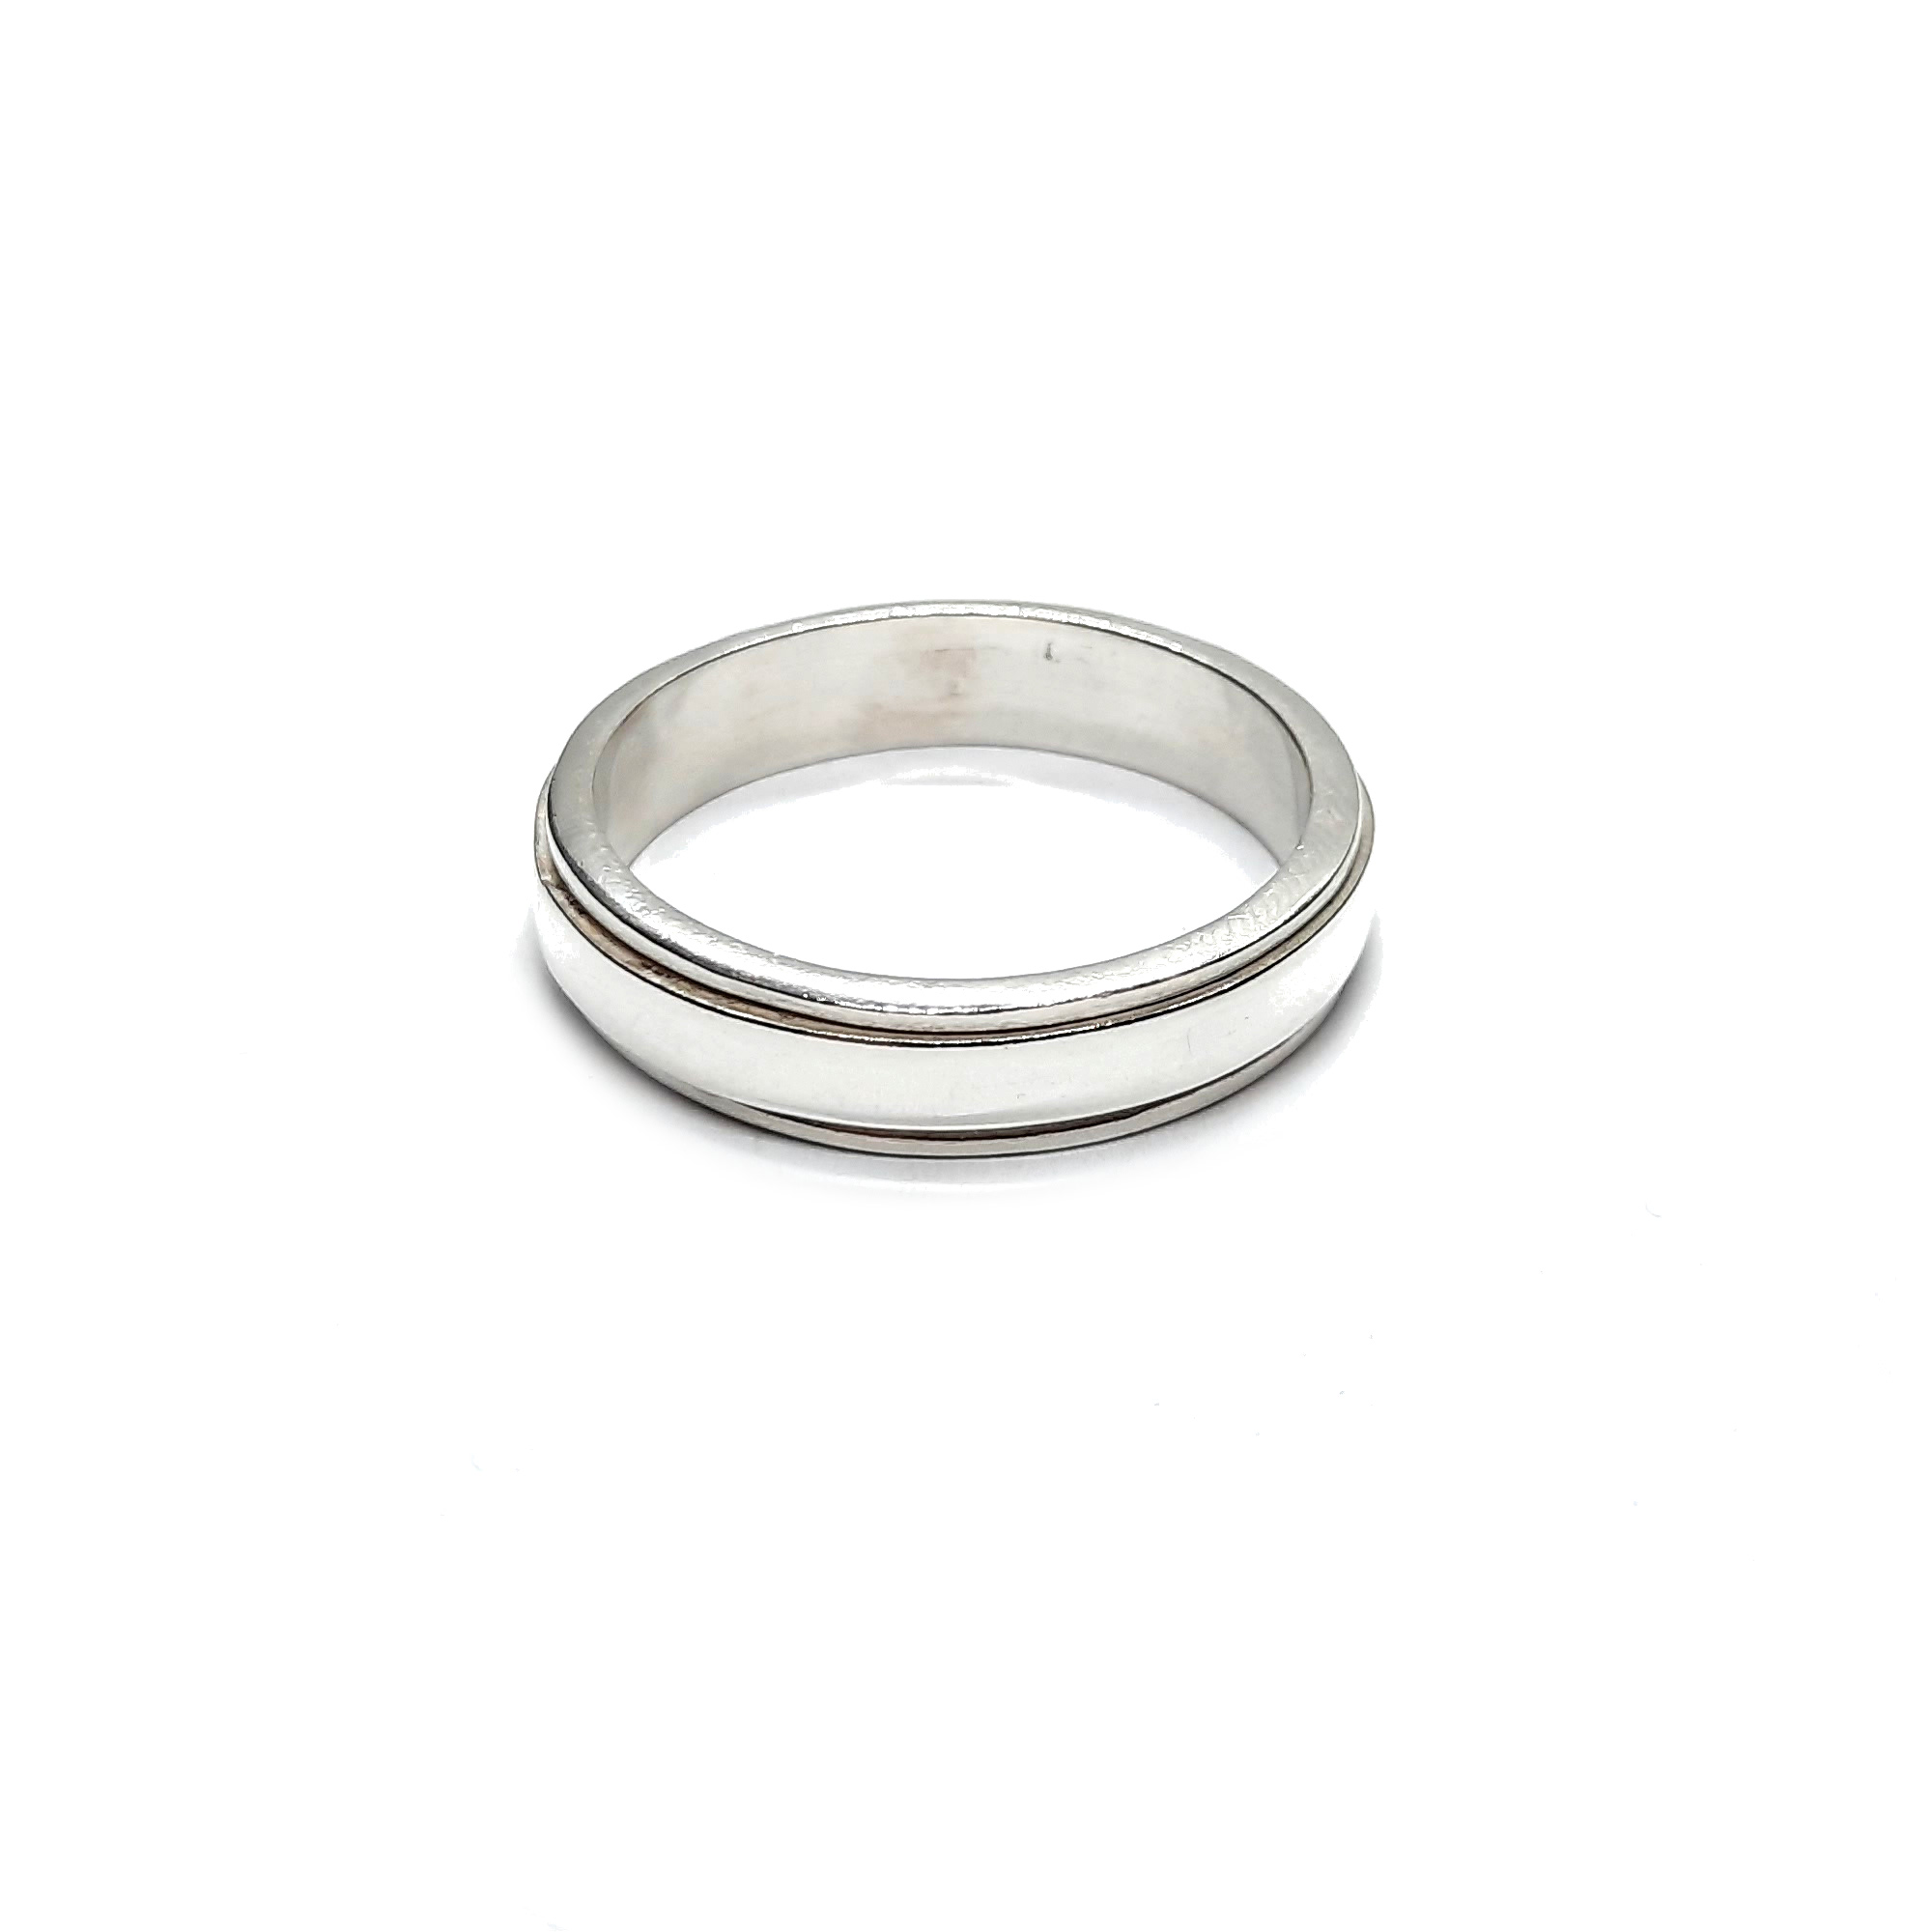 Silver ring - R002230